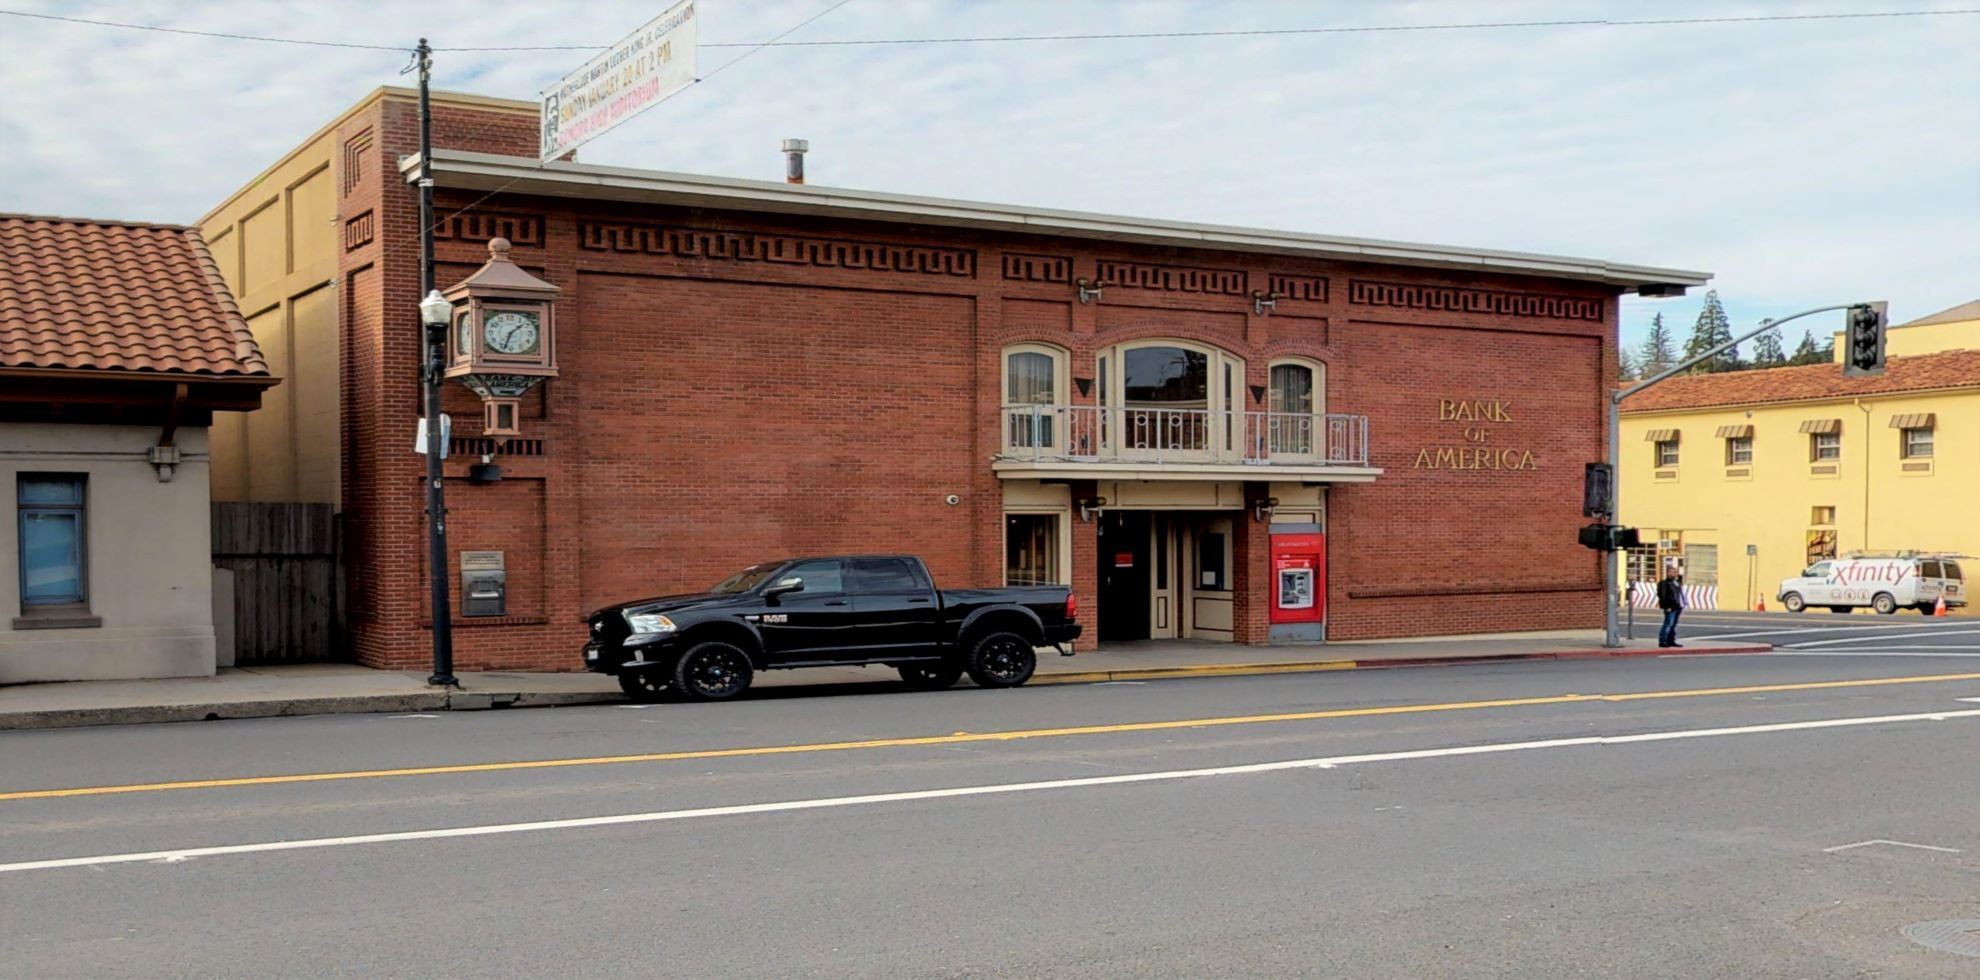 Bank of America financial center with walk-up ATM   180 S Washington St, Sonora, CA 95370